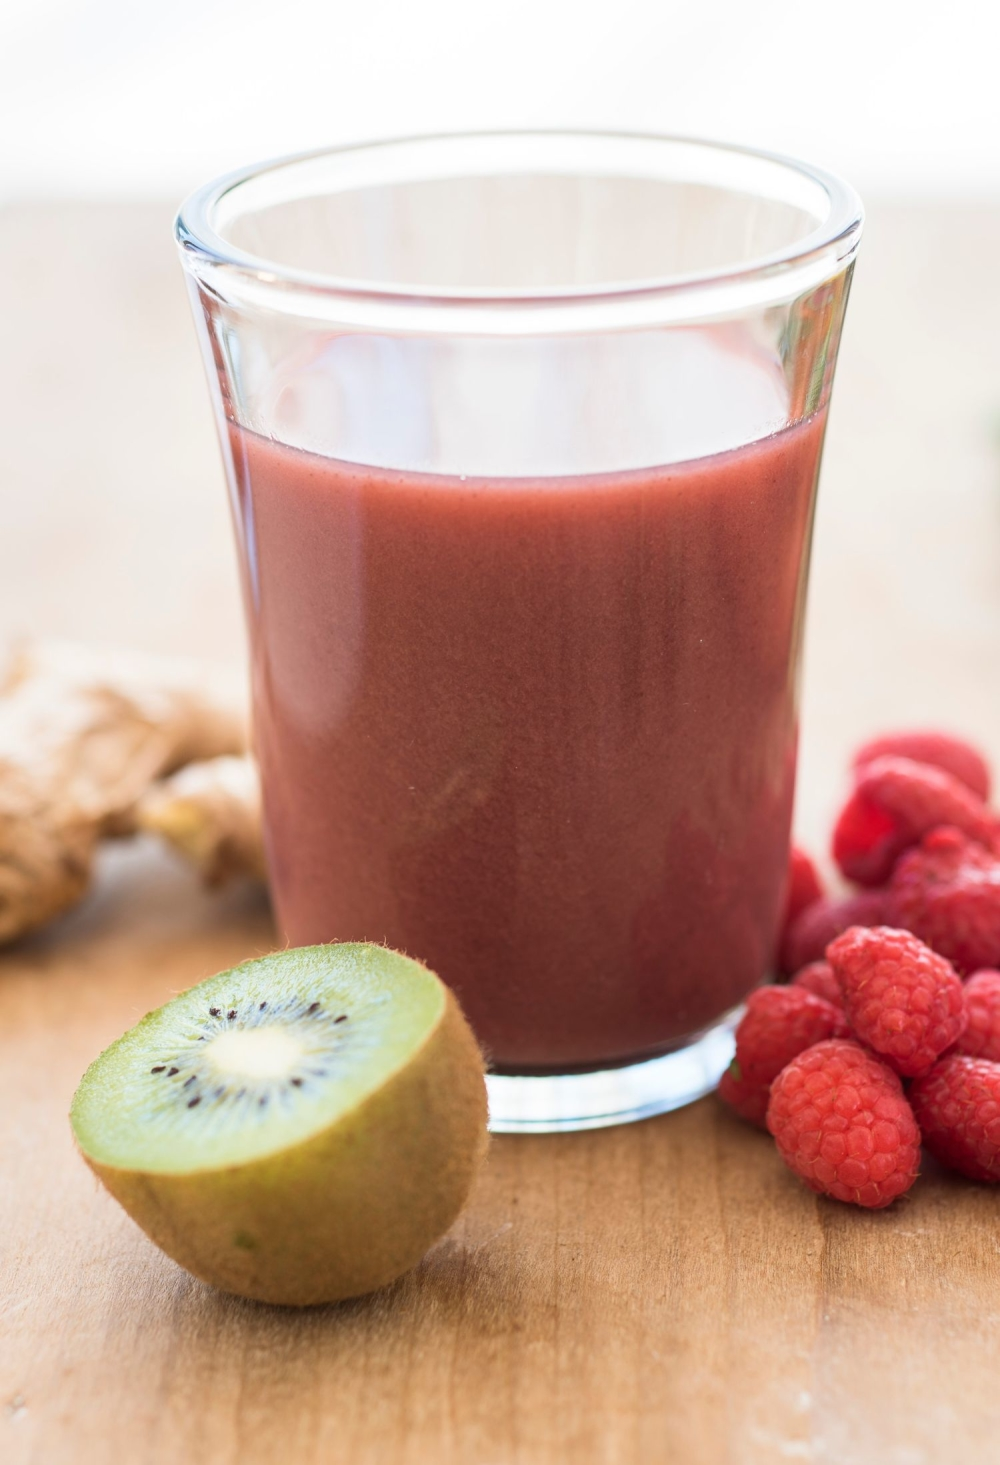 healthy juice from fruit juices